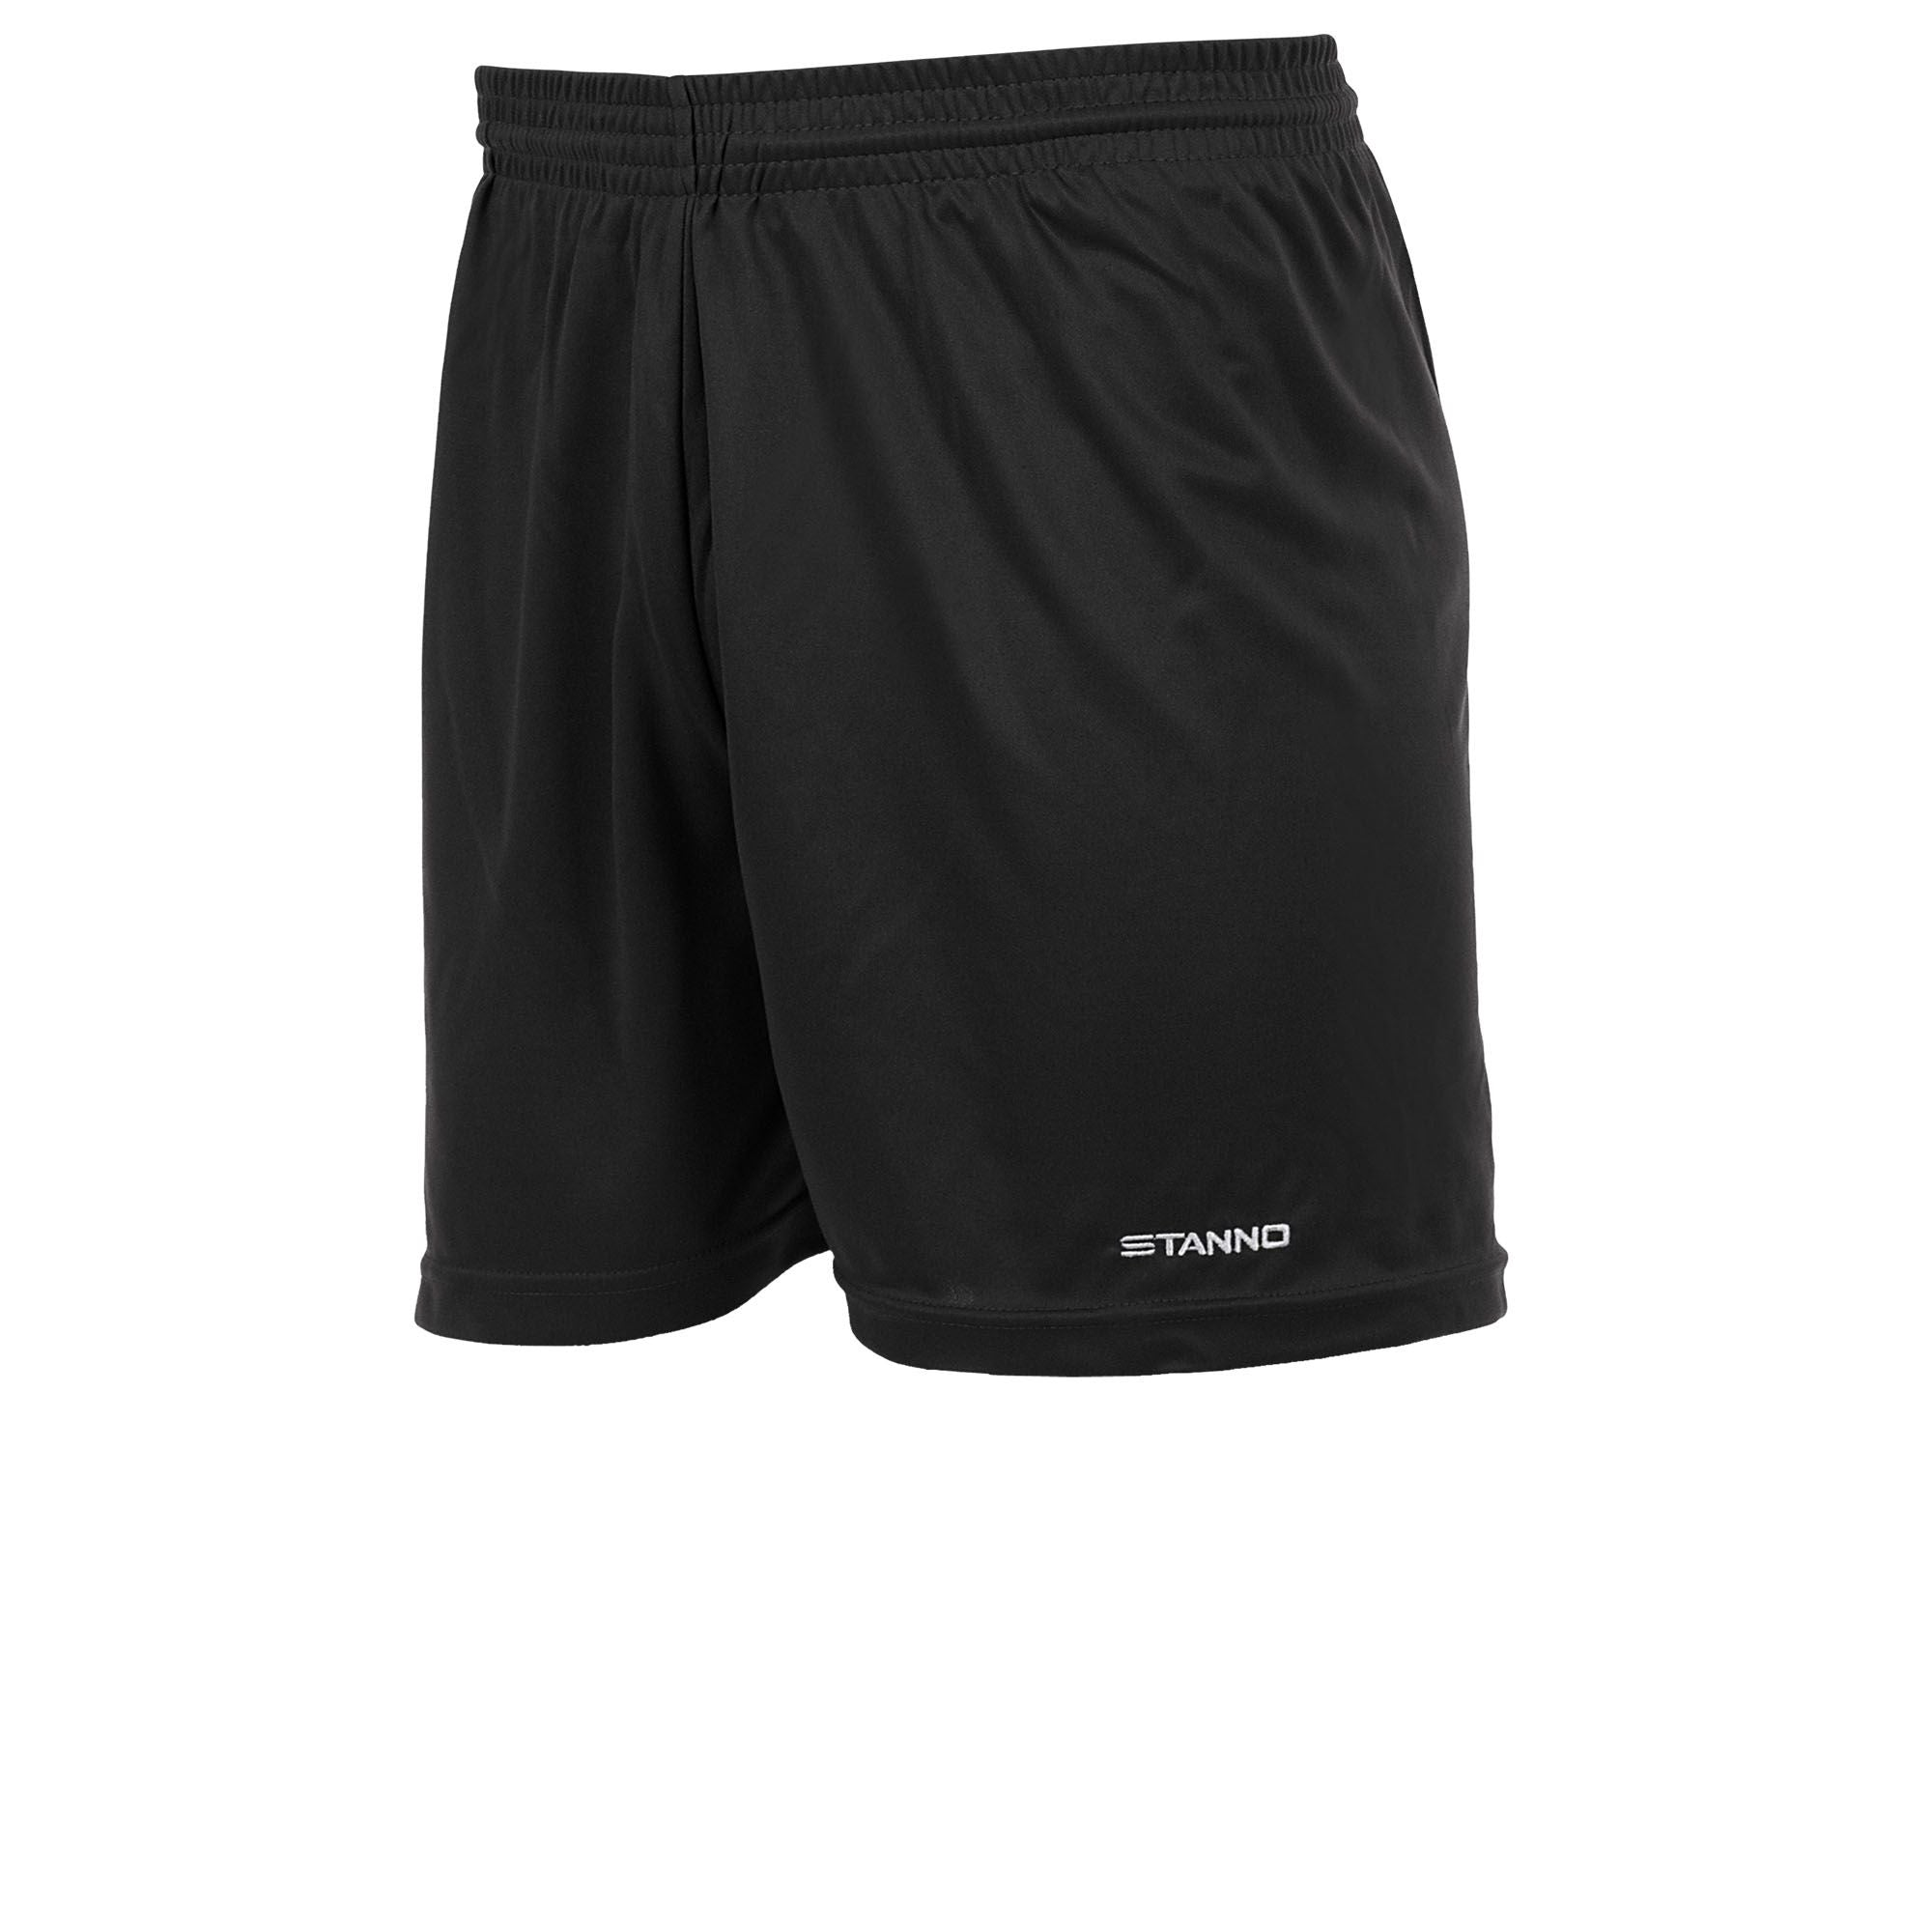 Stanno Club Shorts - Black